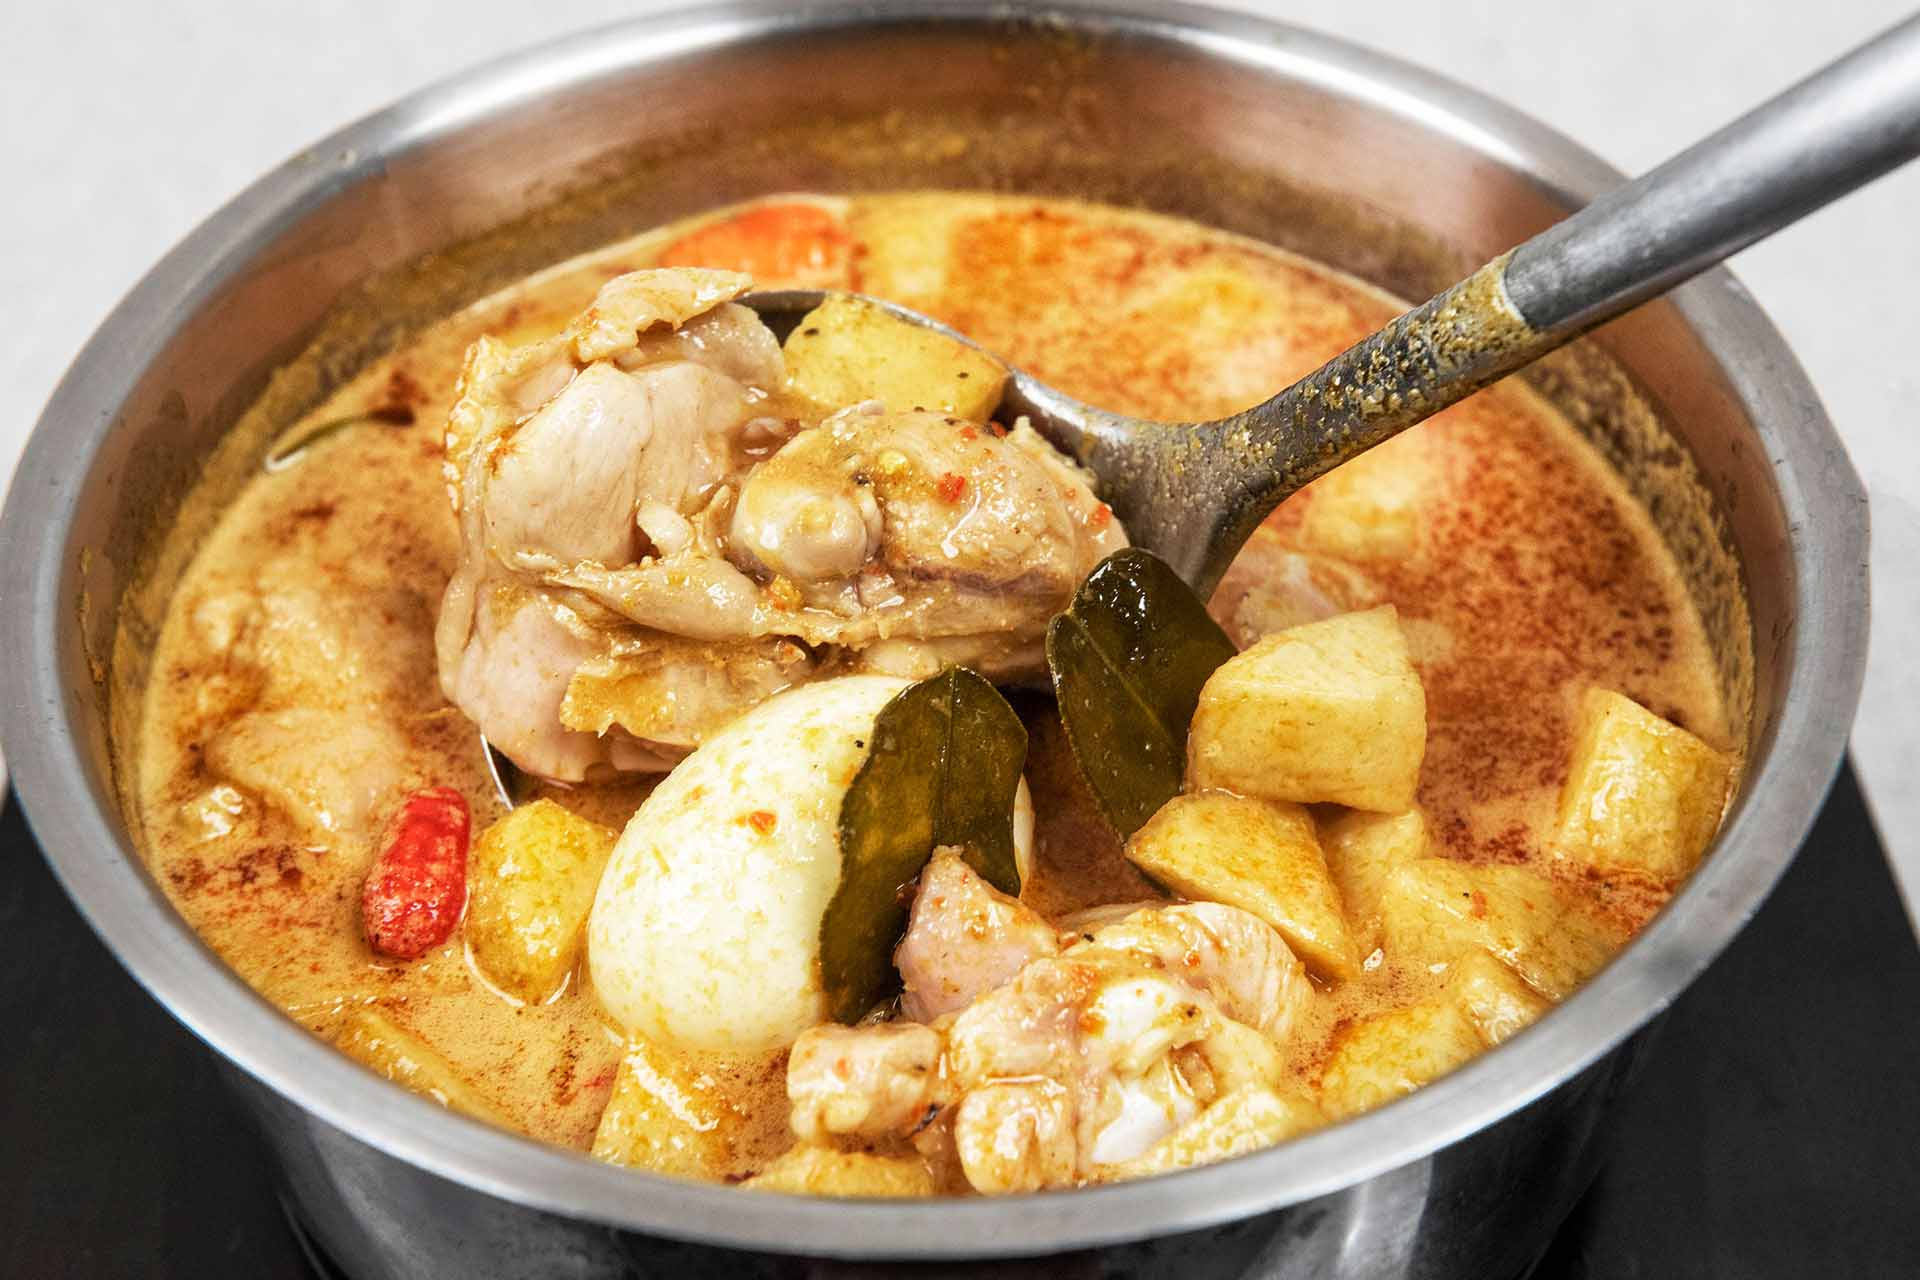 Cook curry